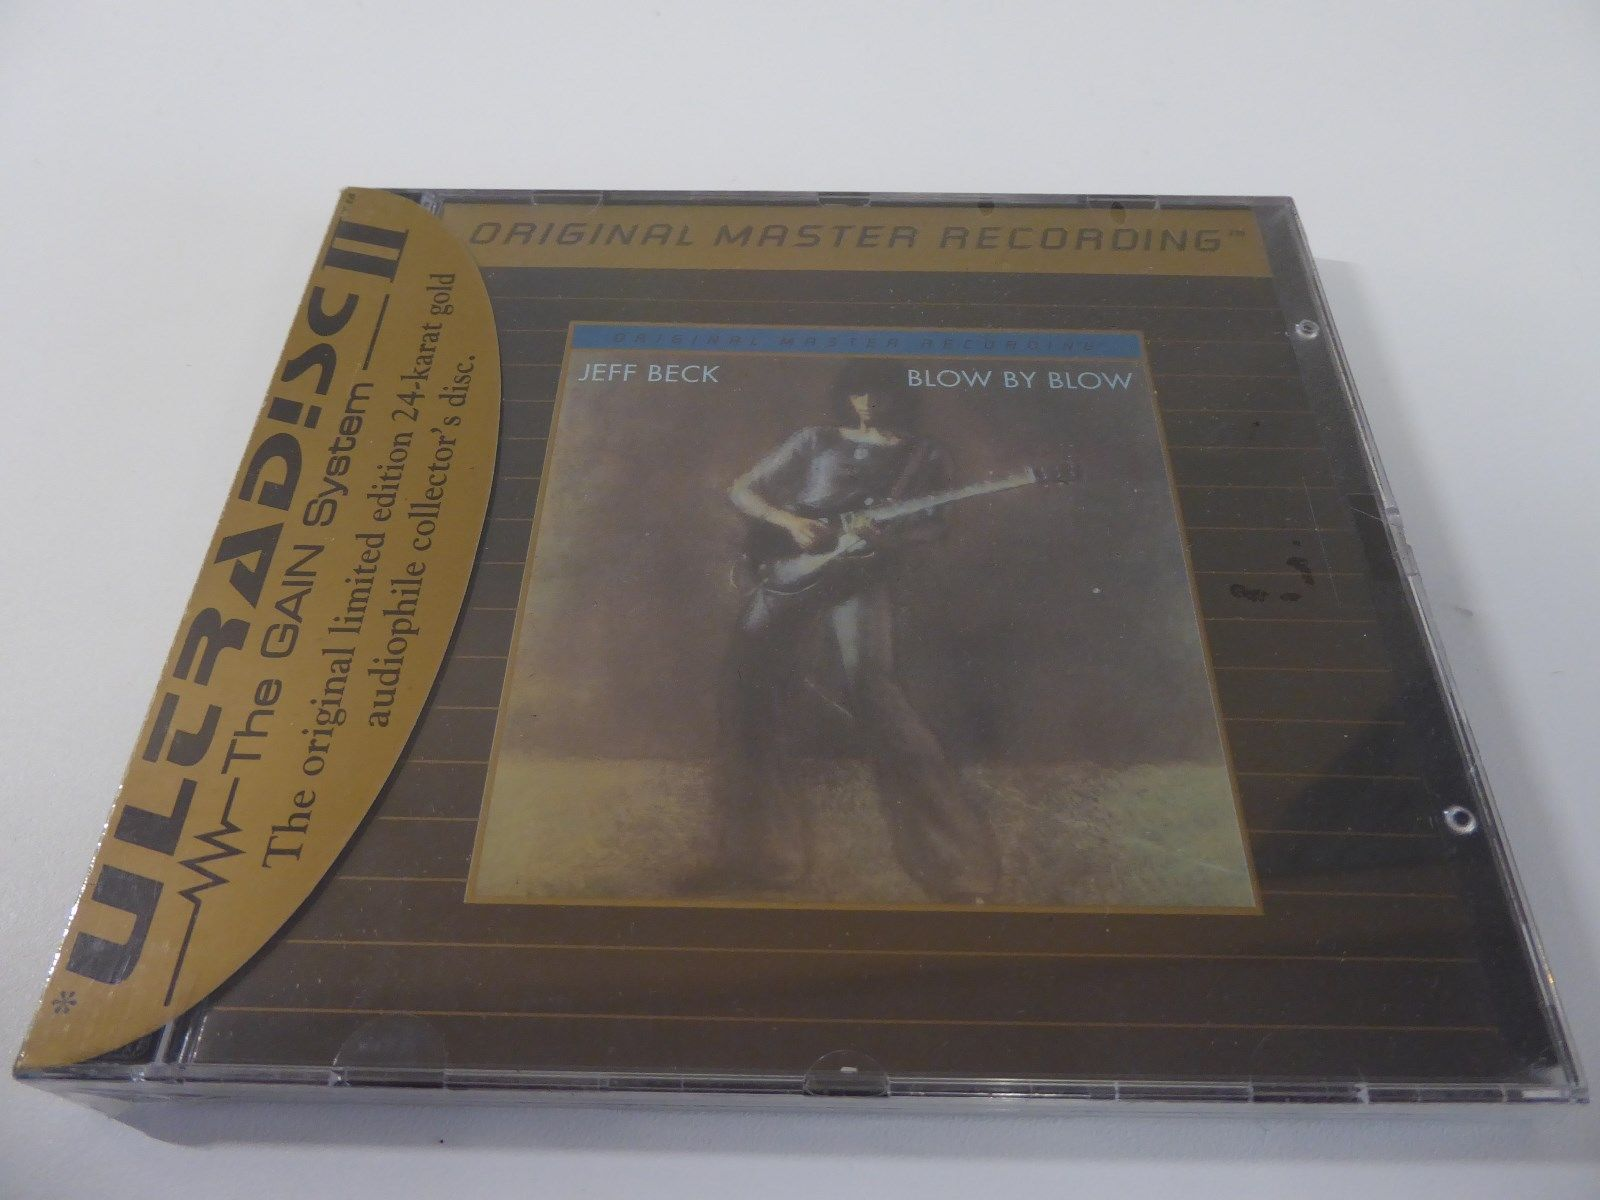 popsike com - MFSL GOLD CD SEALED Jeff Beck - Blow by Blow